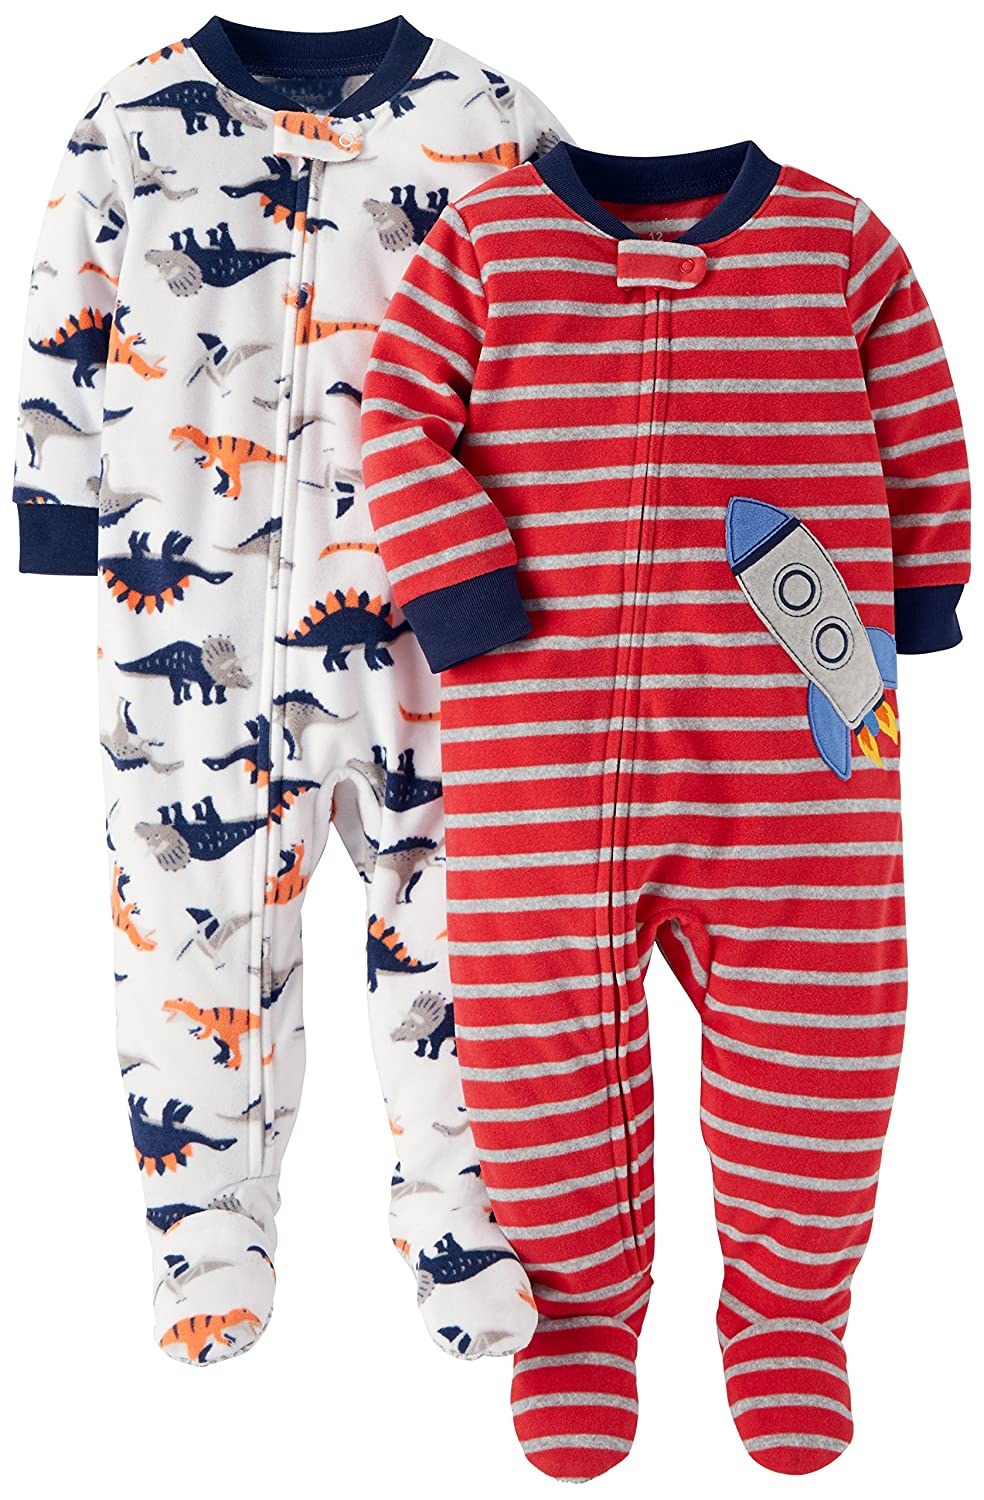 6548dbf70c85 Amazon.com  Carter s Baby and Toddler Boys  2-Pack Fleece Footed ...